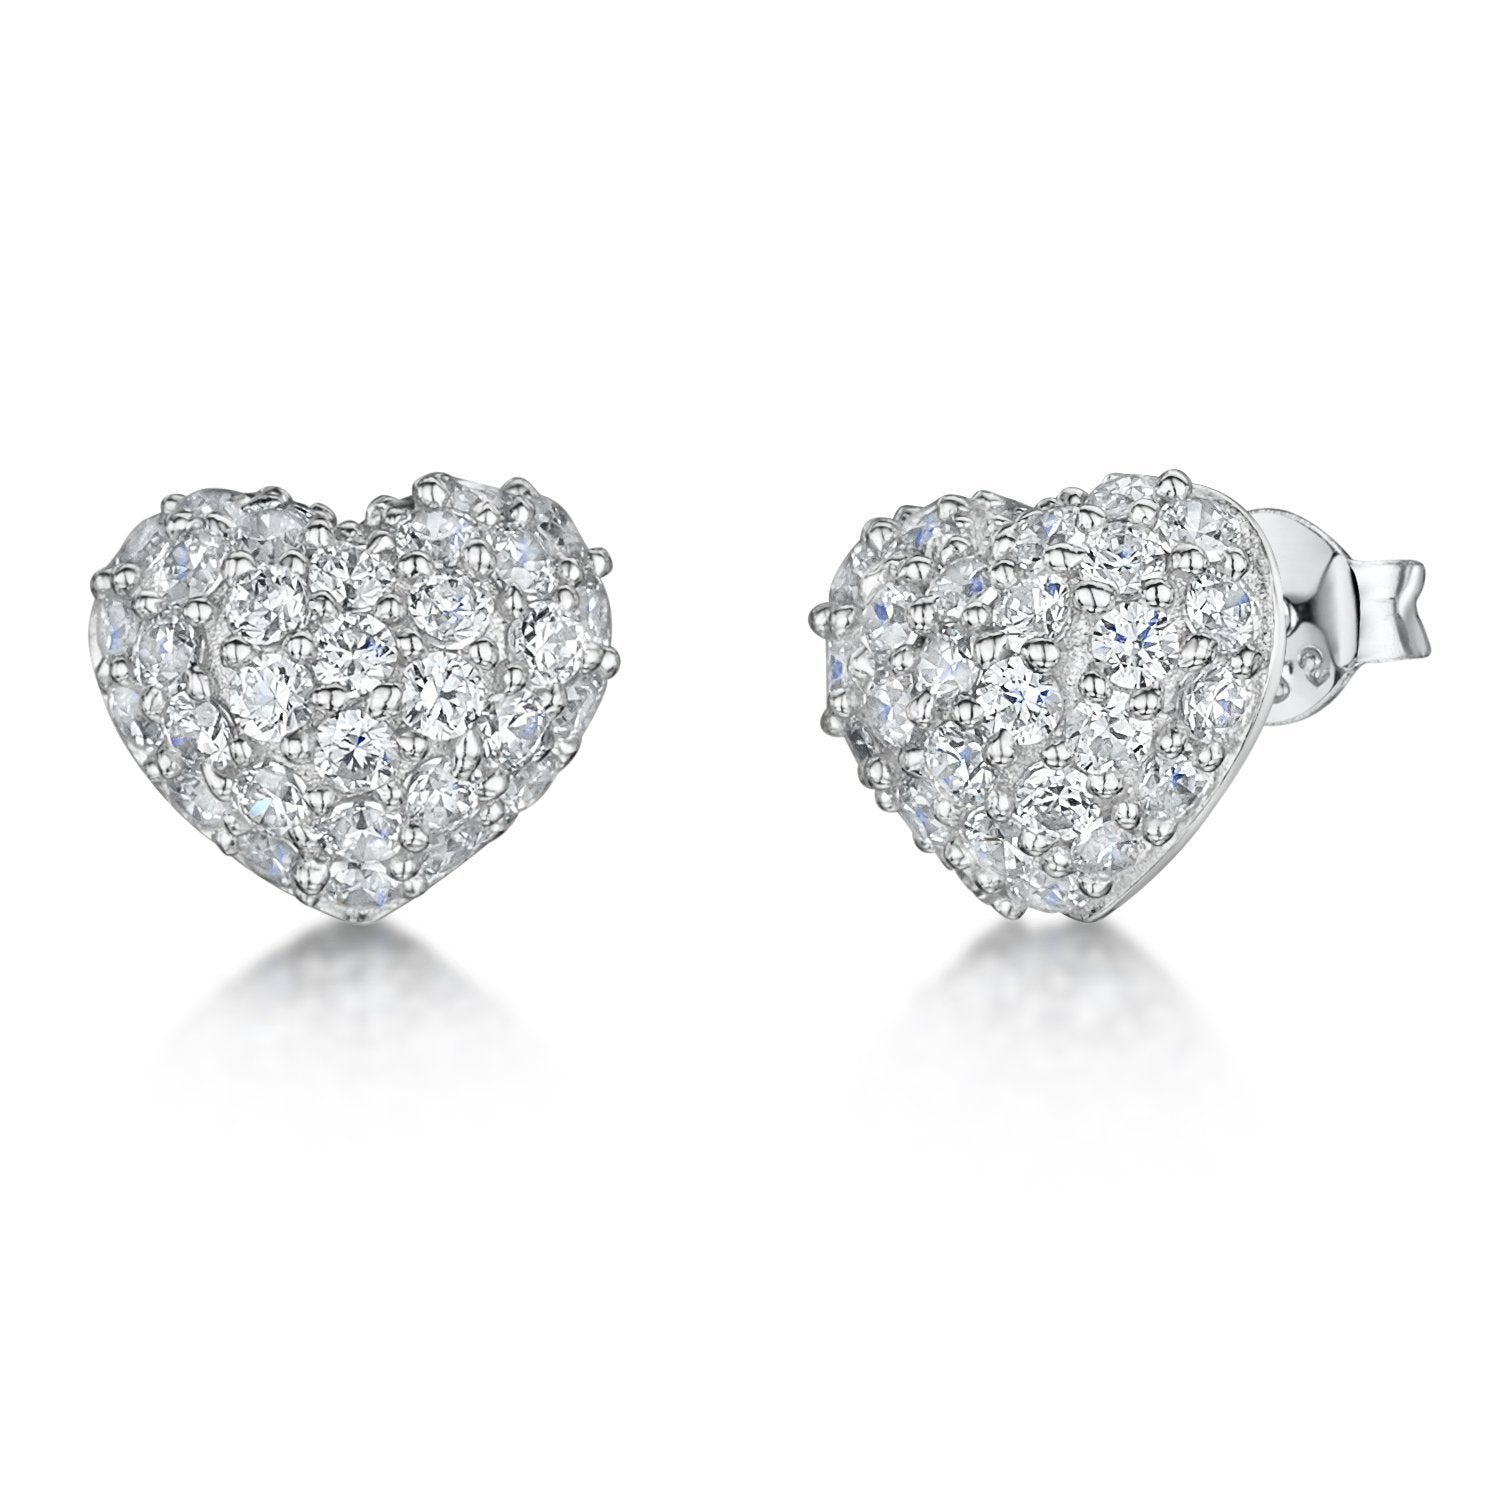 Sterling Silver Heart Stud Earrings Pave Set With Cubic Zirconia Stones - JOOLS By Jenny Brown